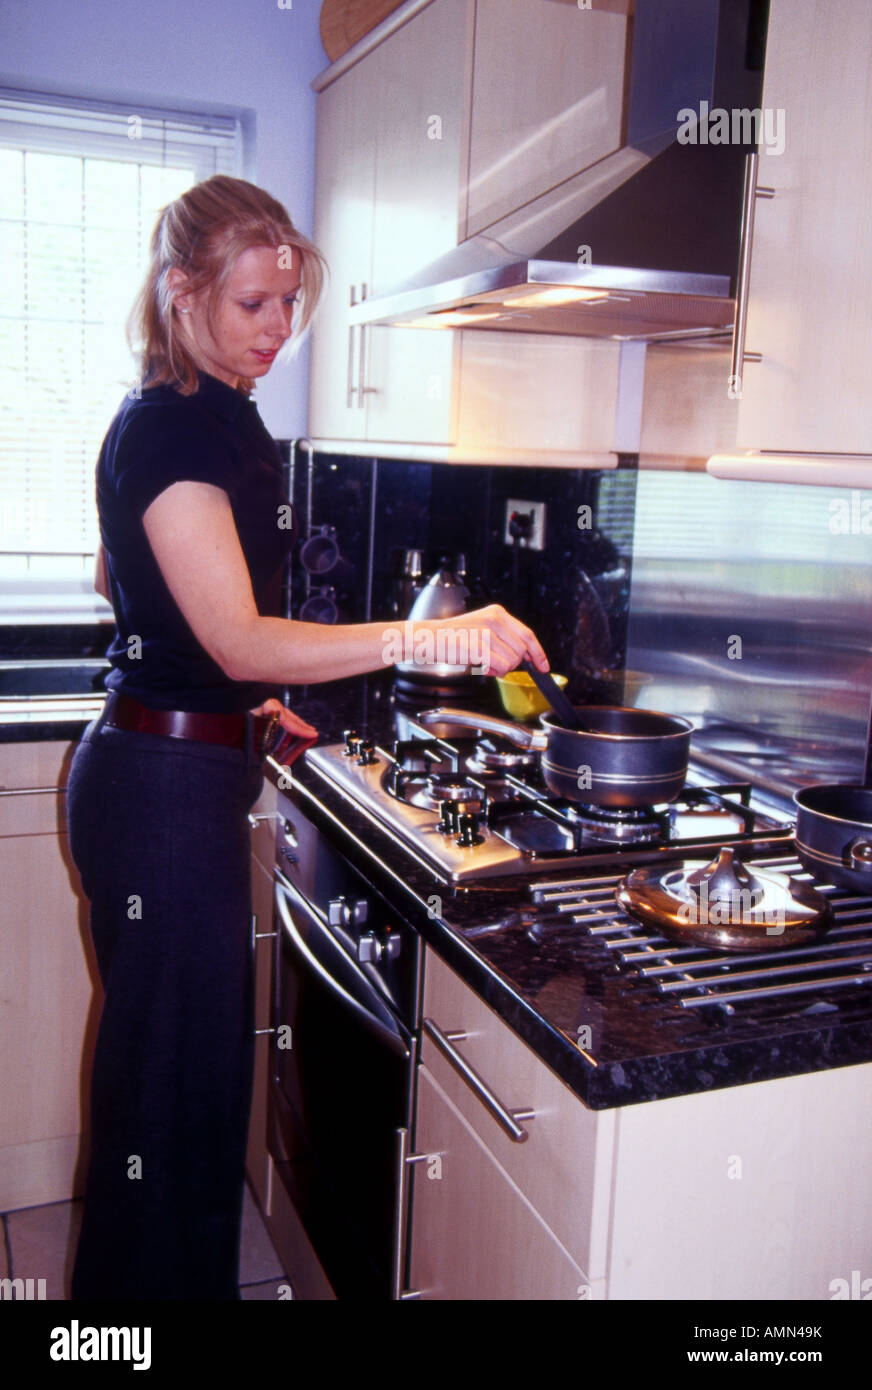 Woman Cooking On Gas Stove Stock Photo Alamy